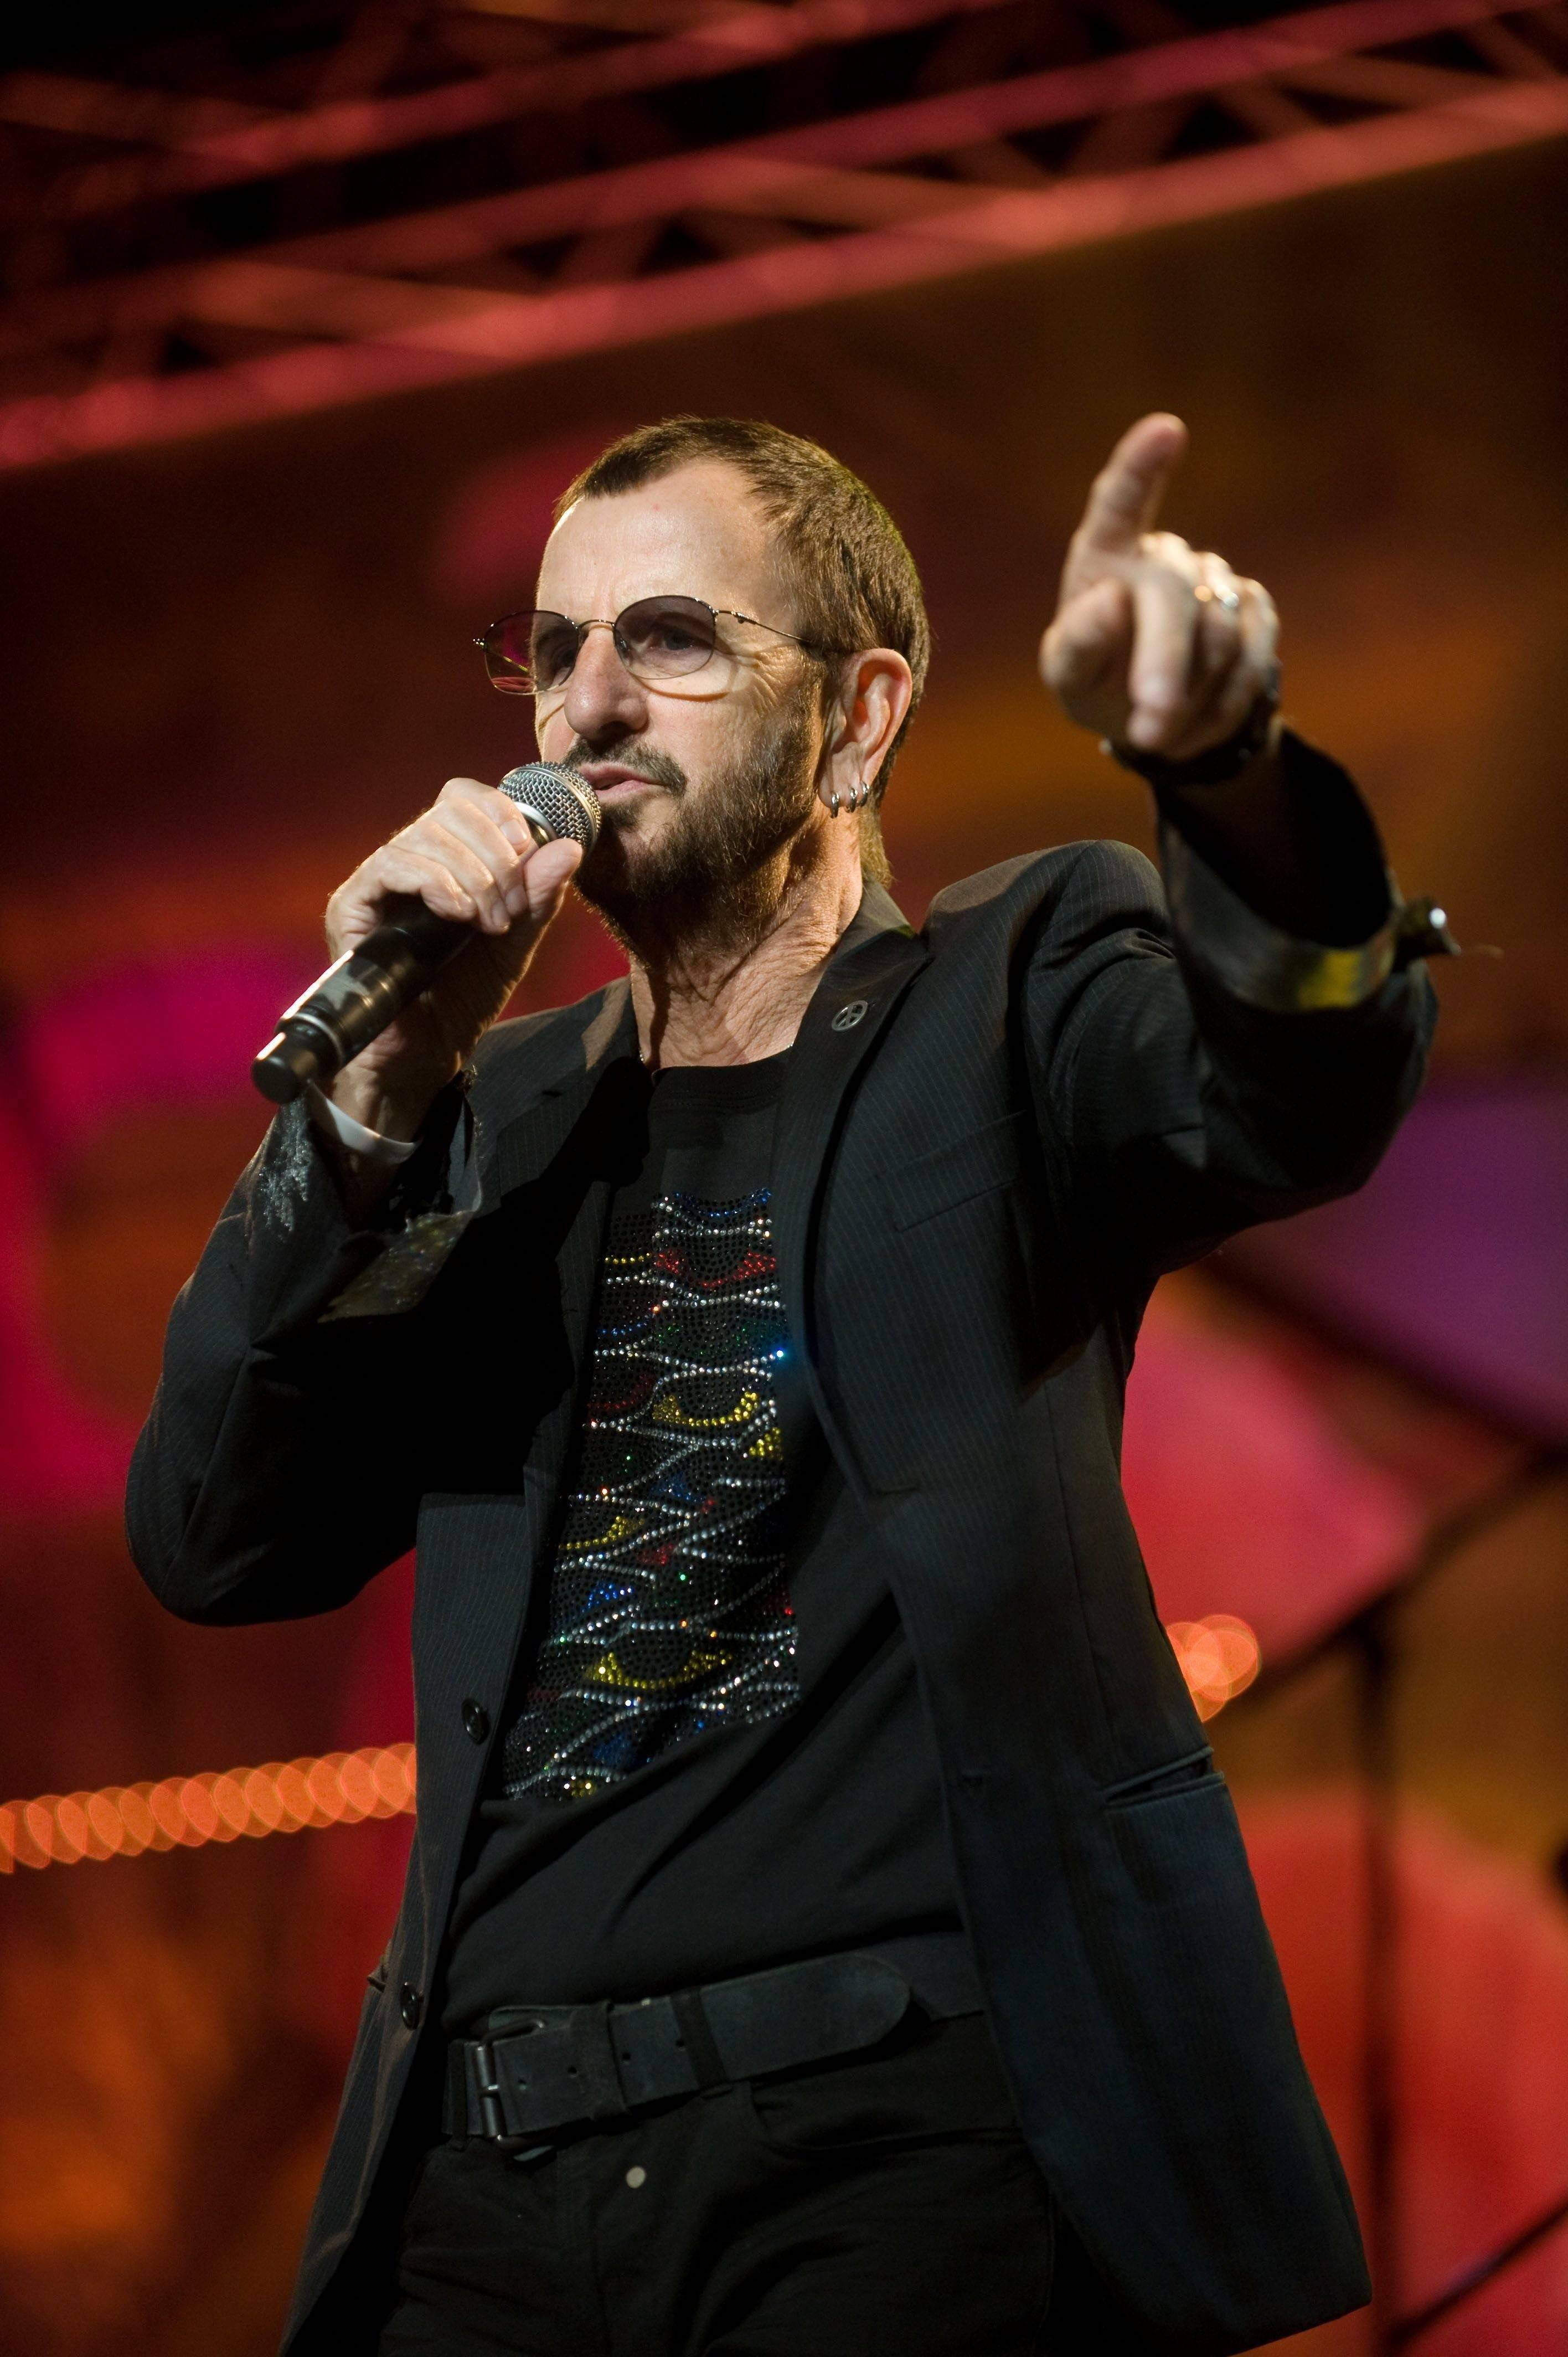 Ringo Starr and His All Starr Band play the Chicago Theatre at 8 p.m. Saturday, June 28.